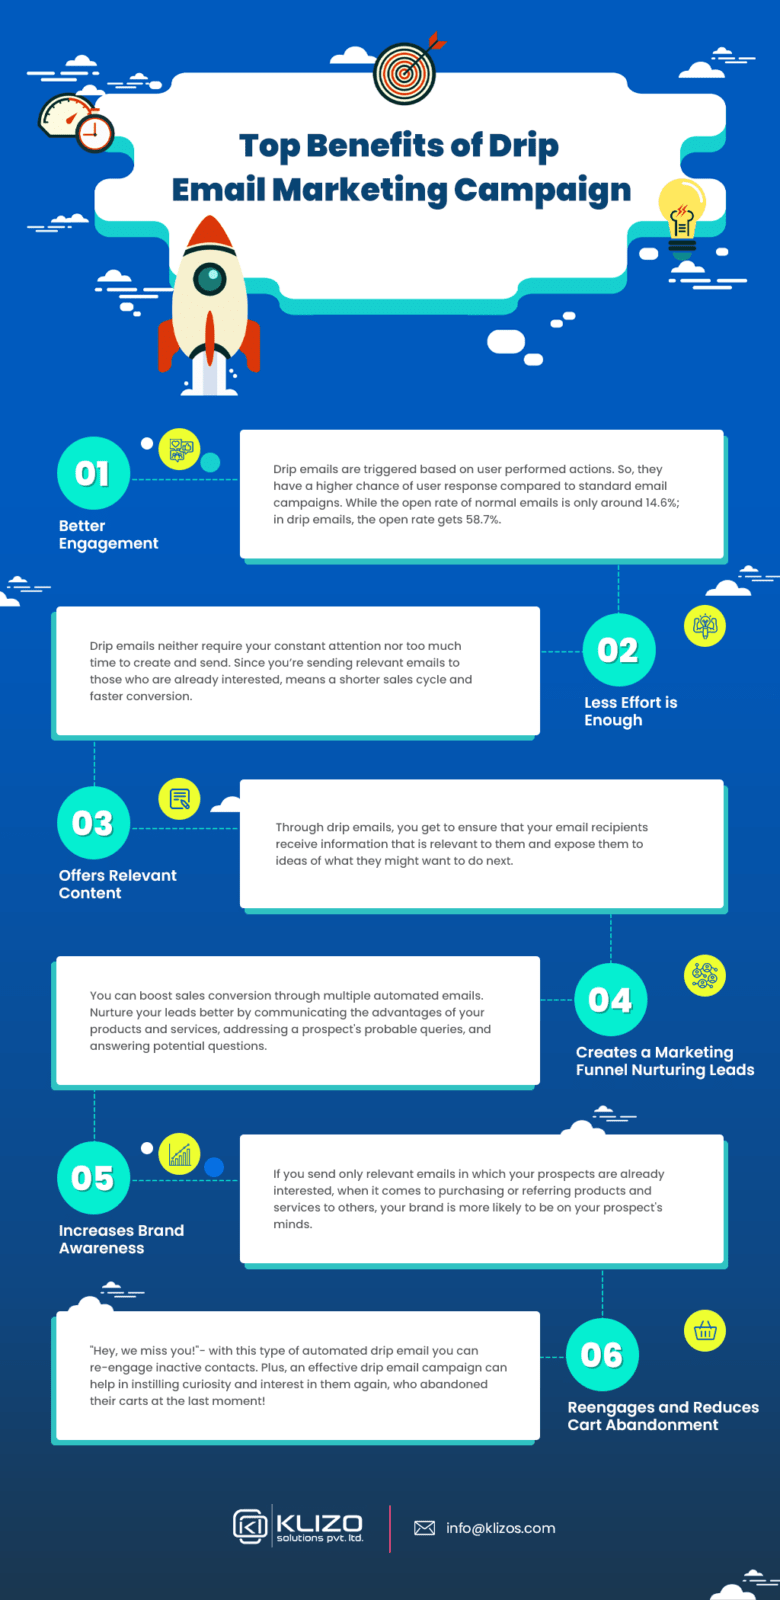 Drip email marketing campaign benefits - Infographic